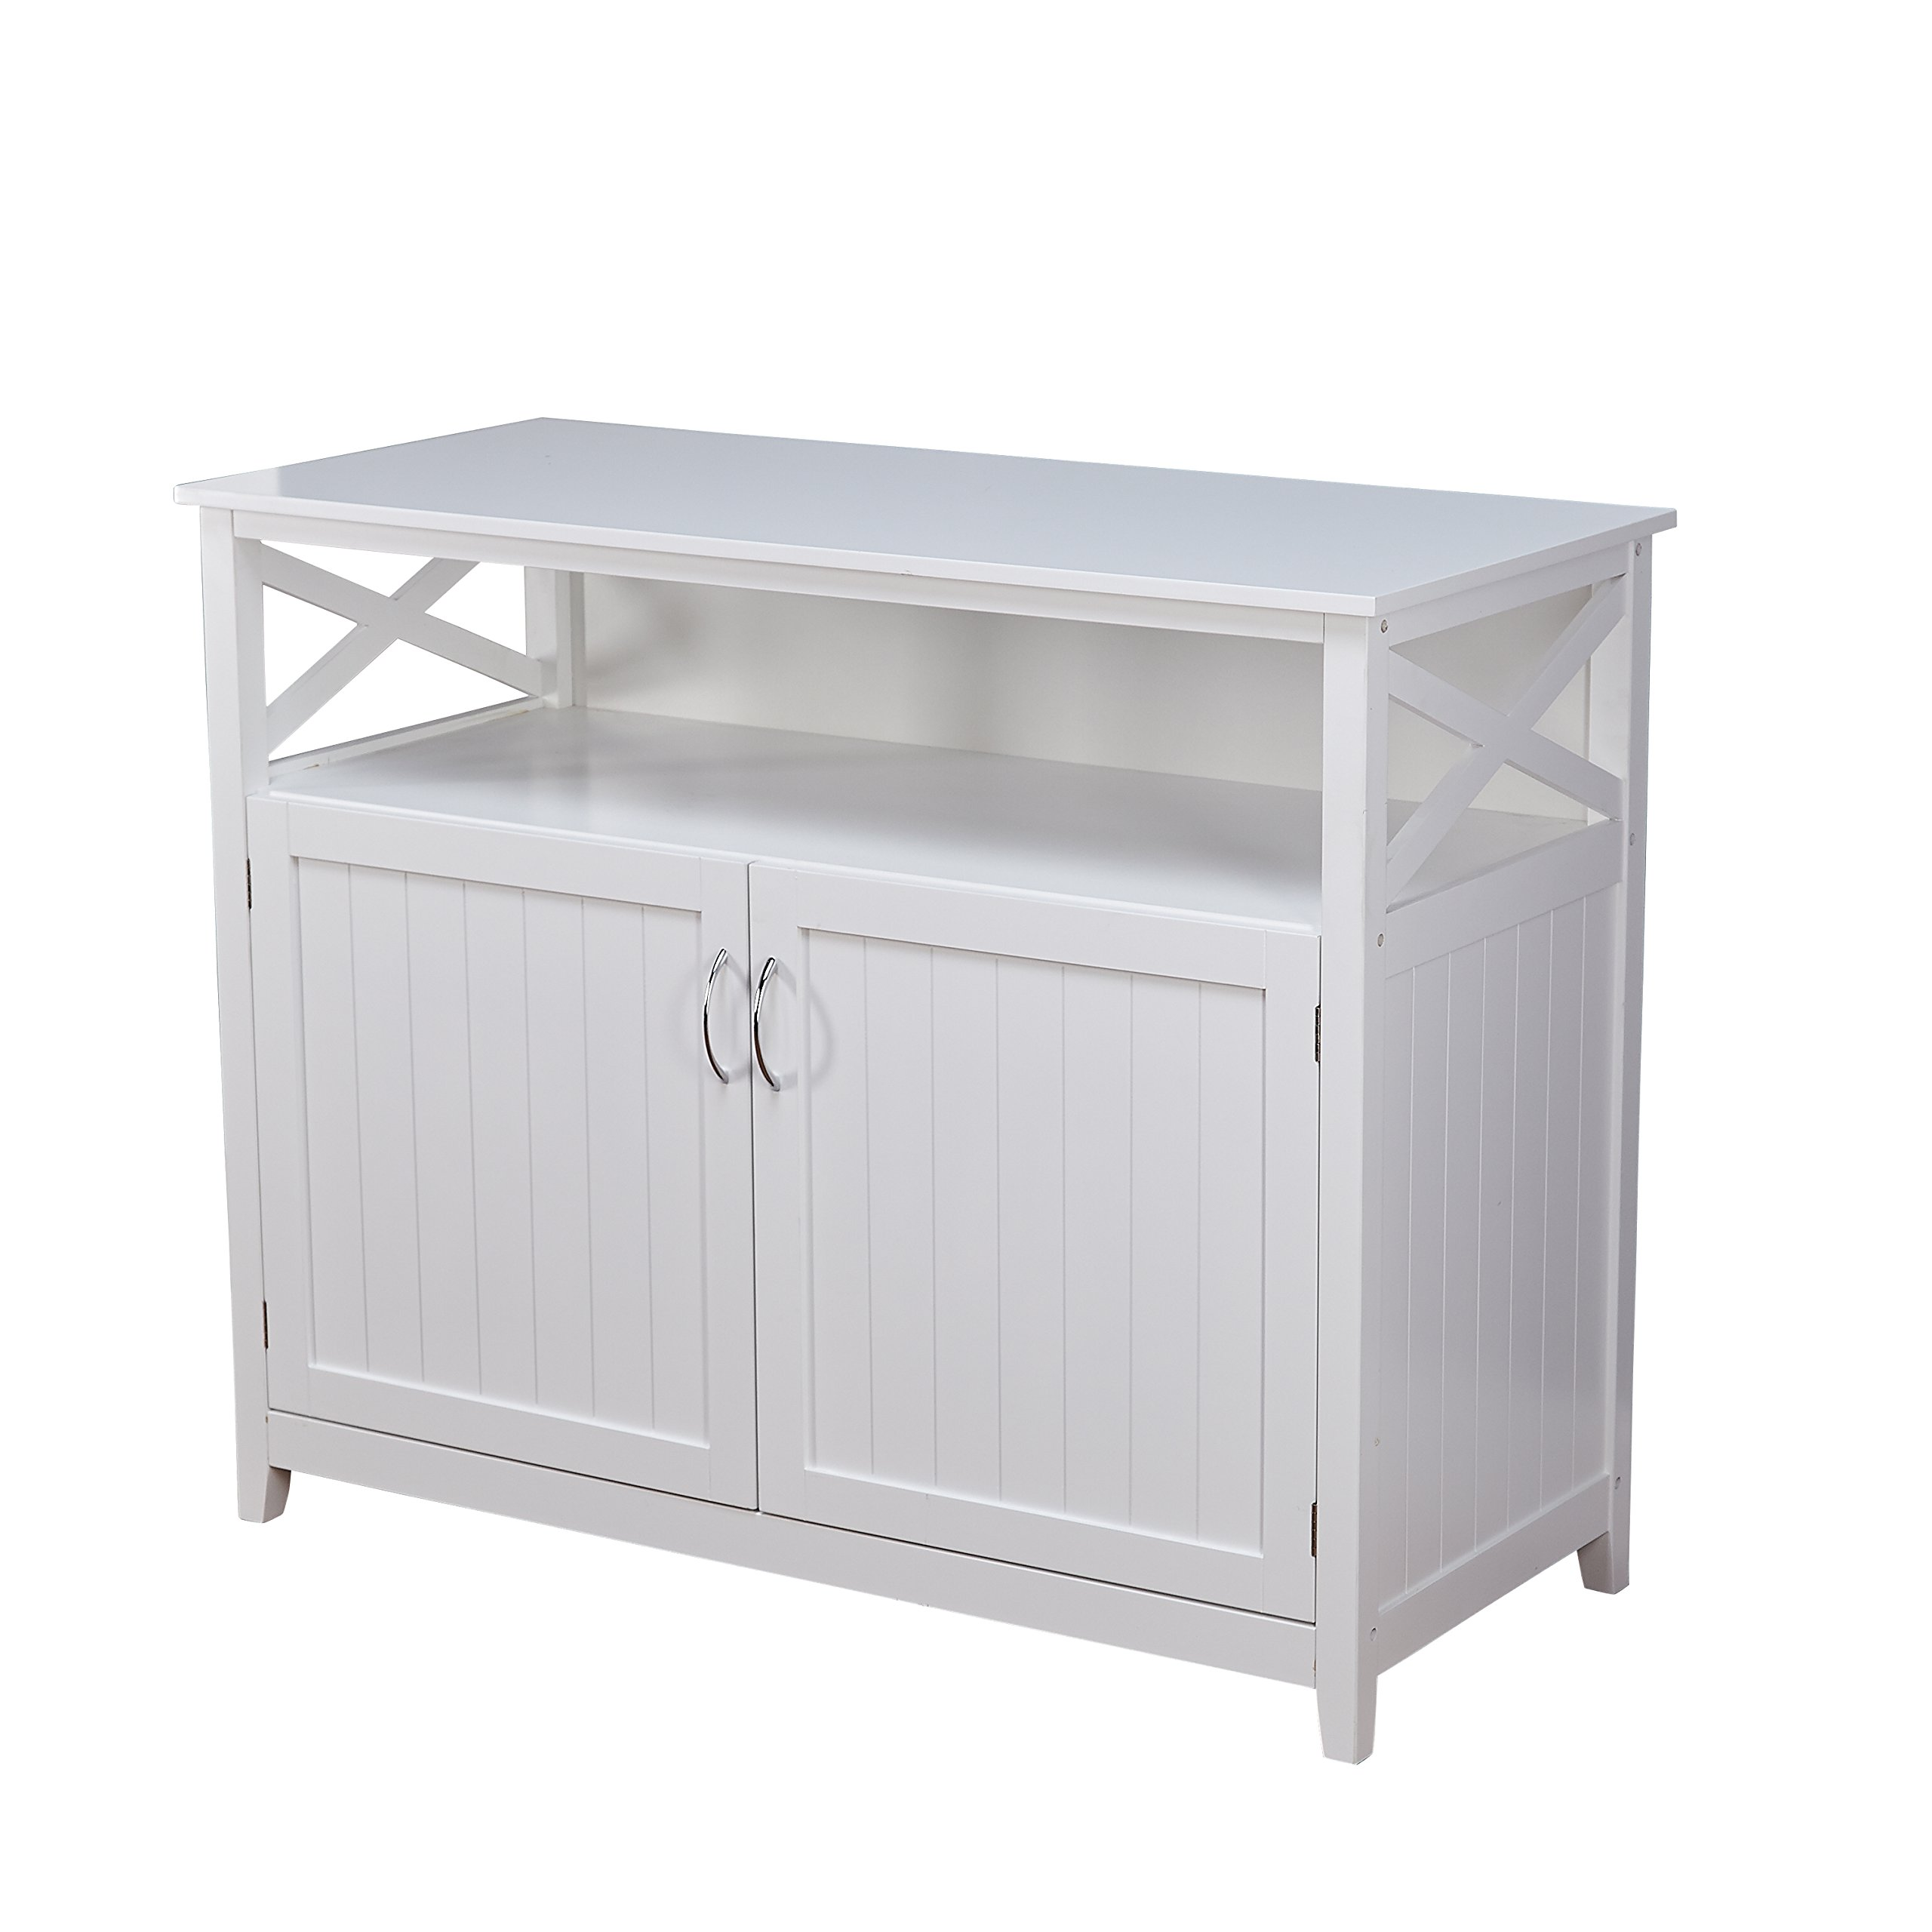 Target Marketing Systems 83670WHT Southport White Solid Wood Buffet Storage Cabinet